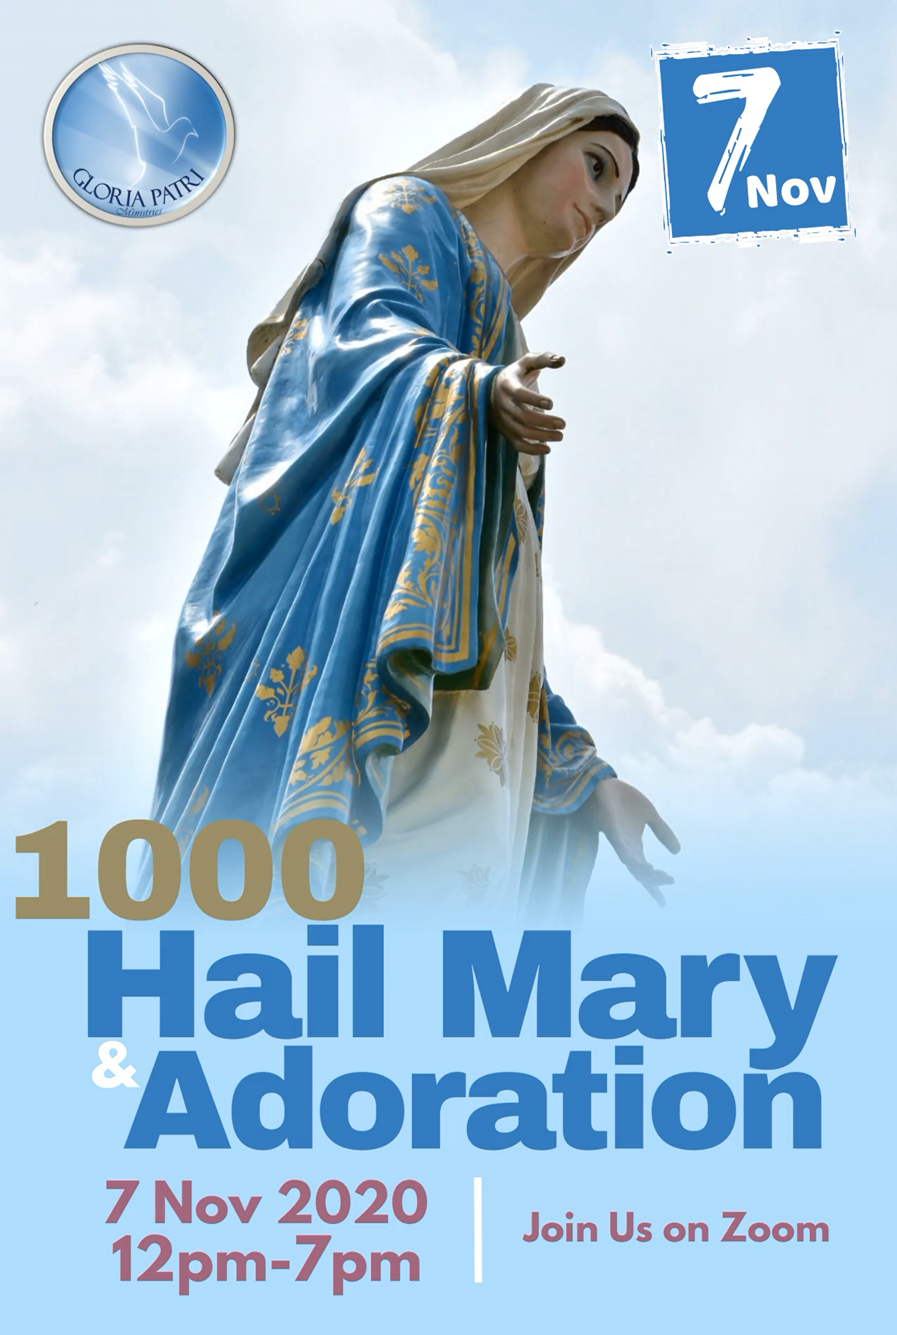 1000 Hail Marys & Adoration